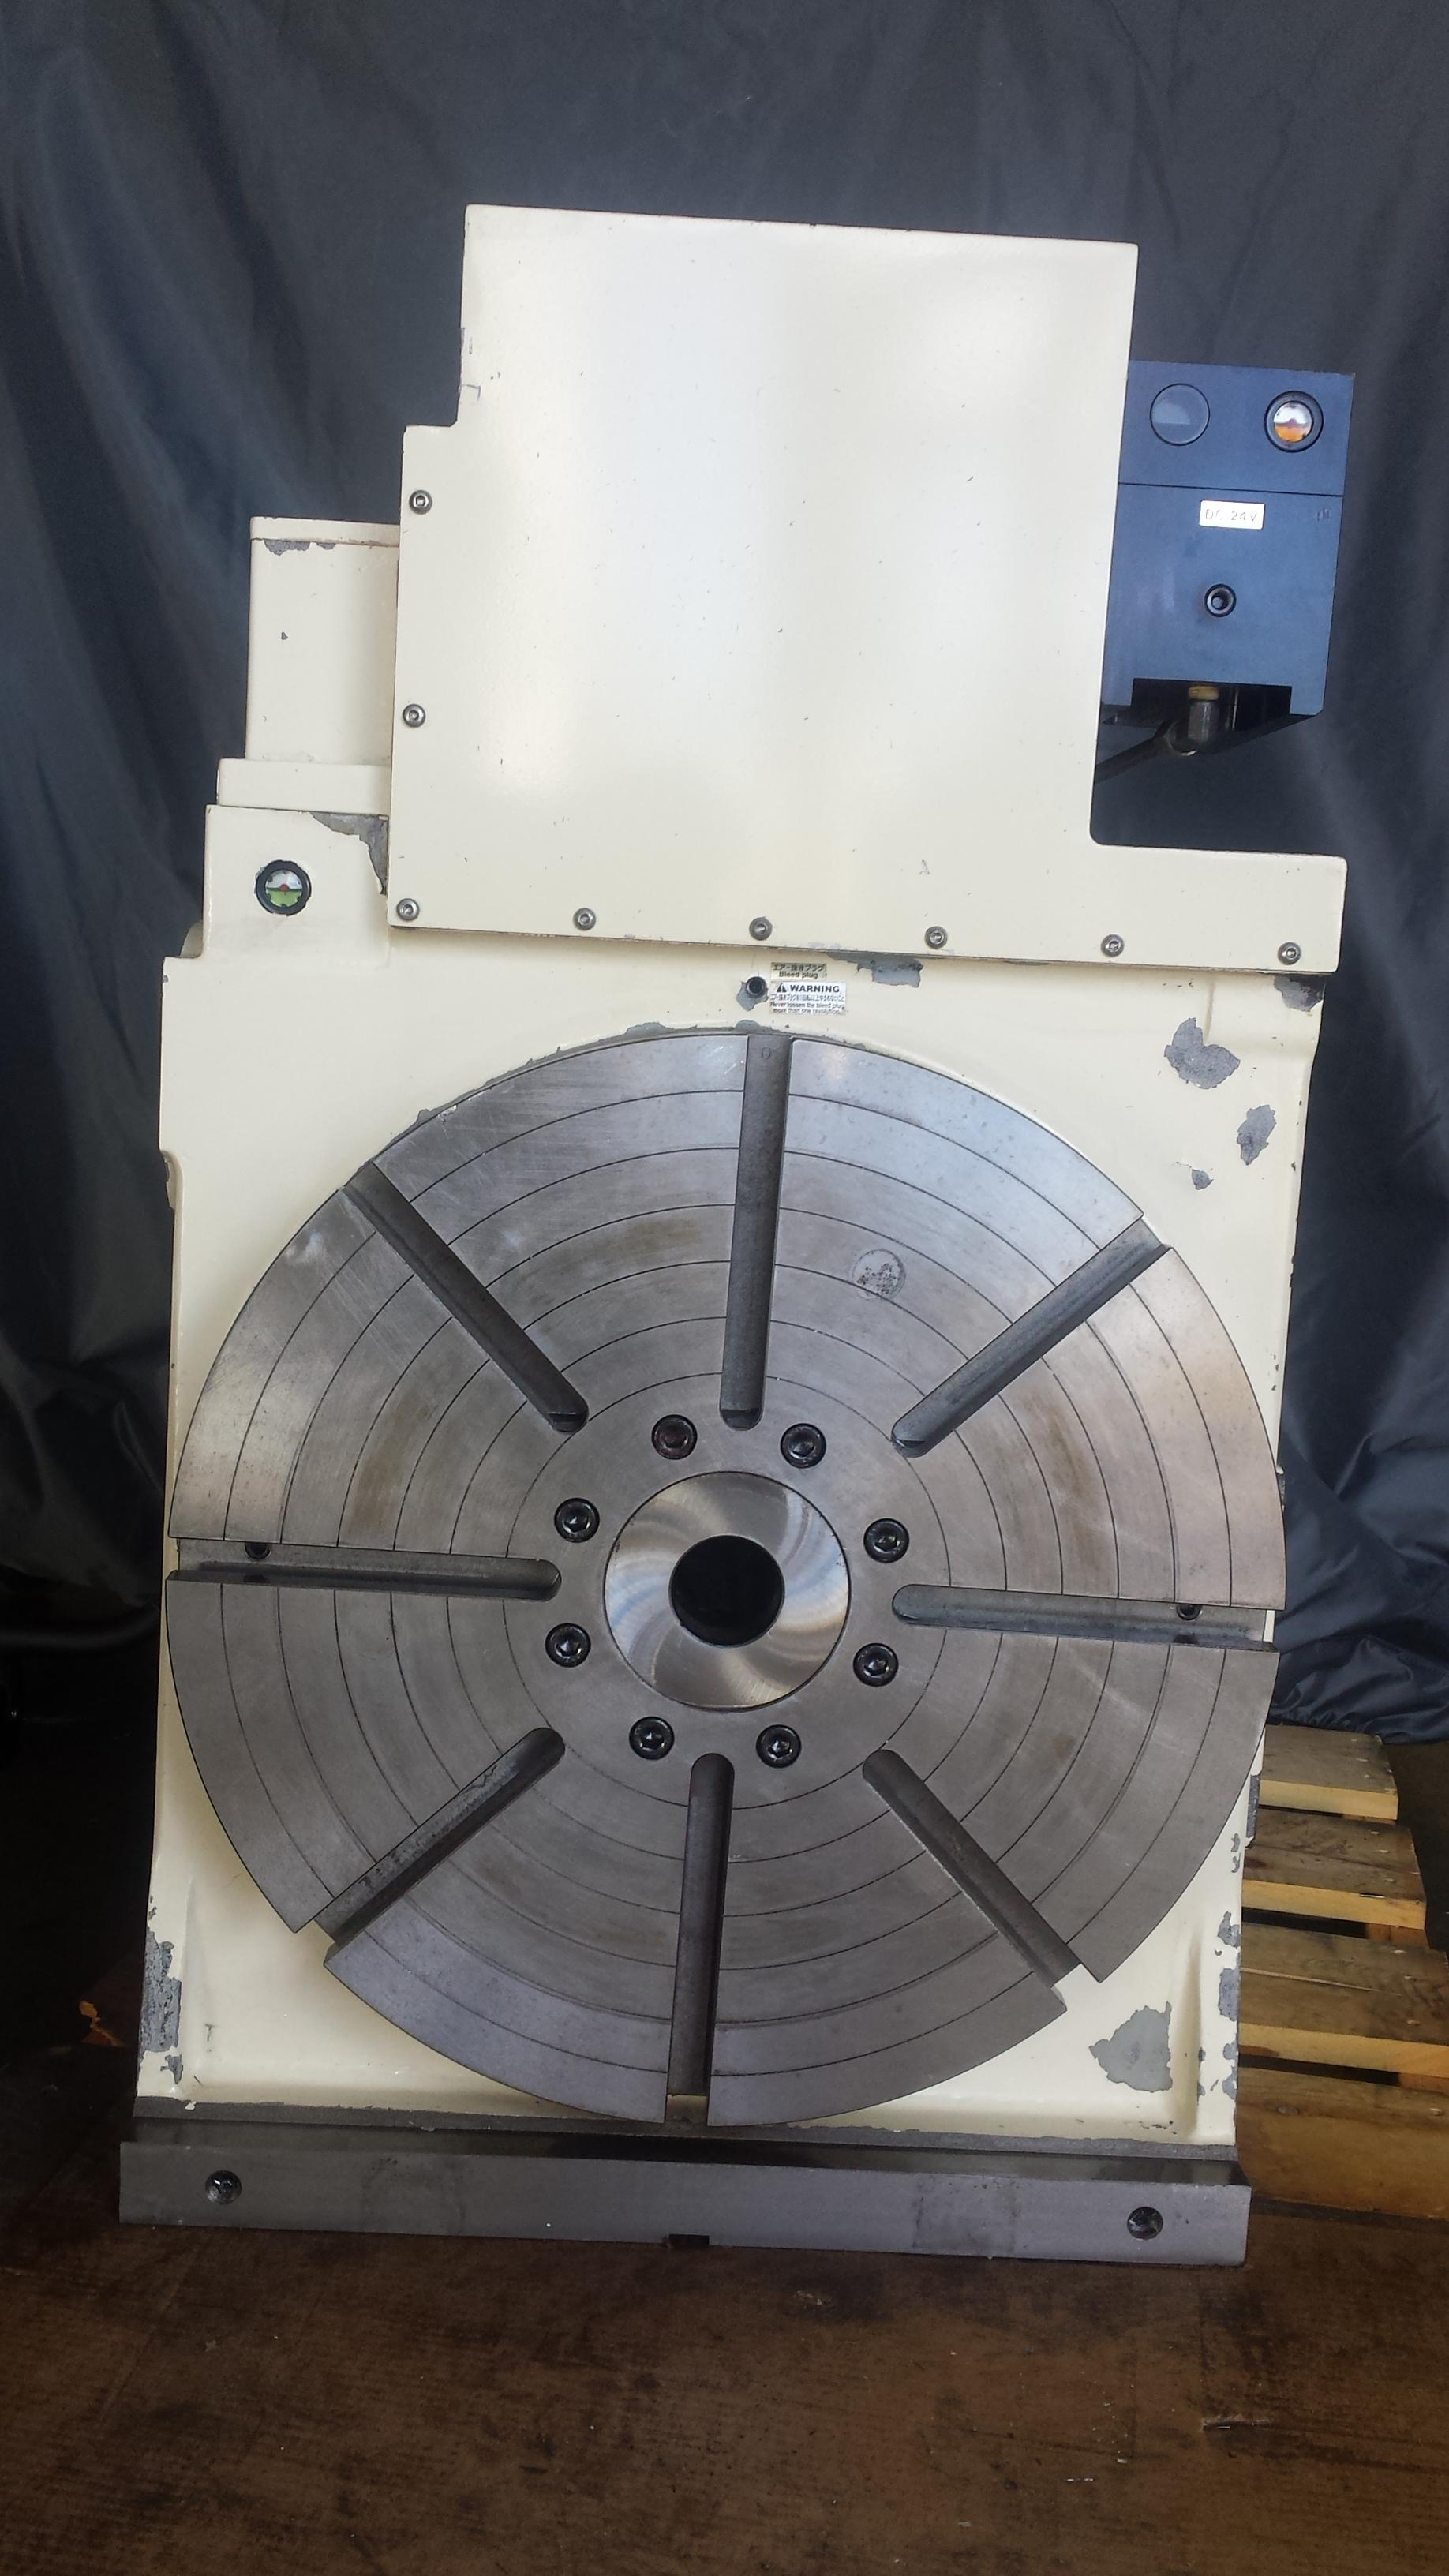 Tsudakoma Model RNCK-501 Rotary Table